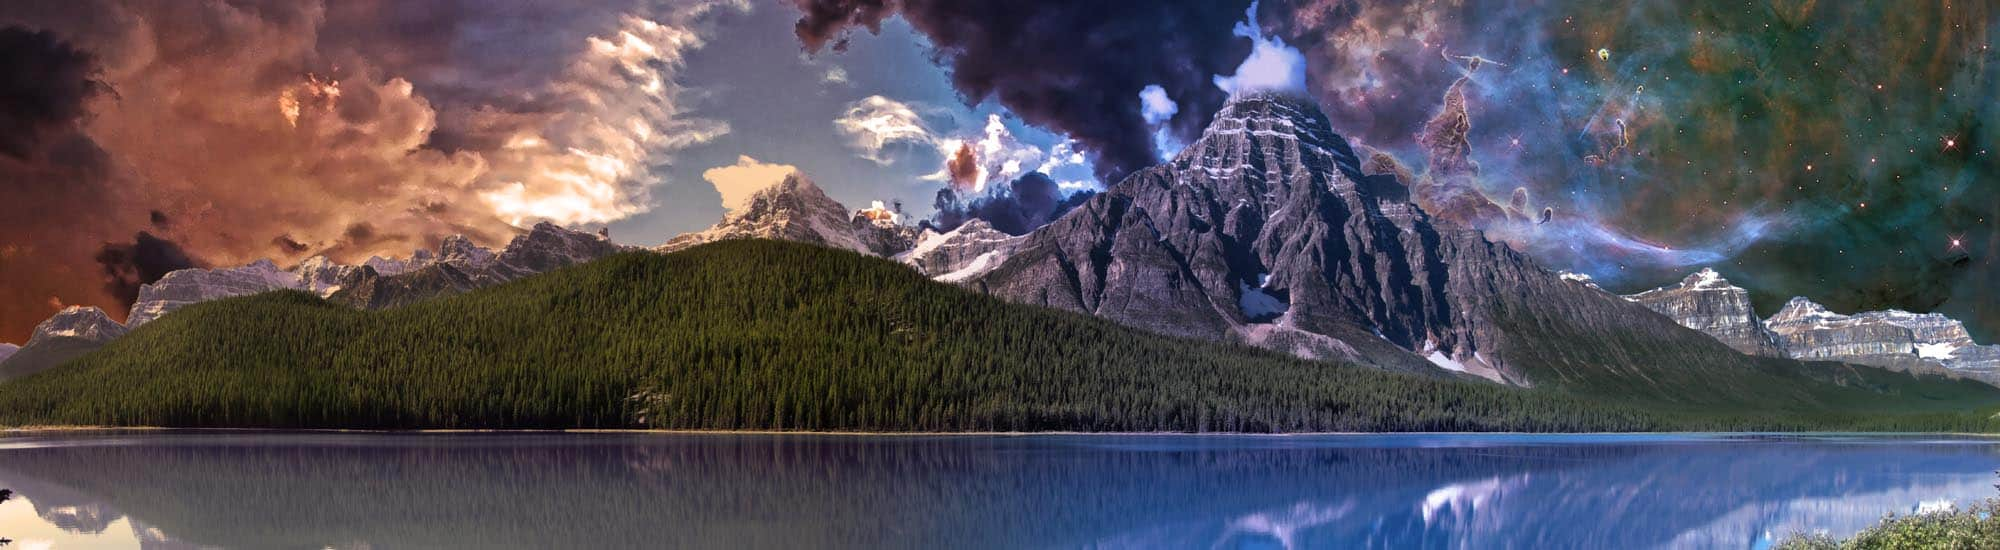 cdn_mountains-1736209.jpg